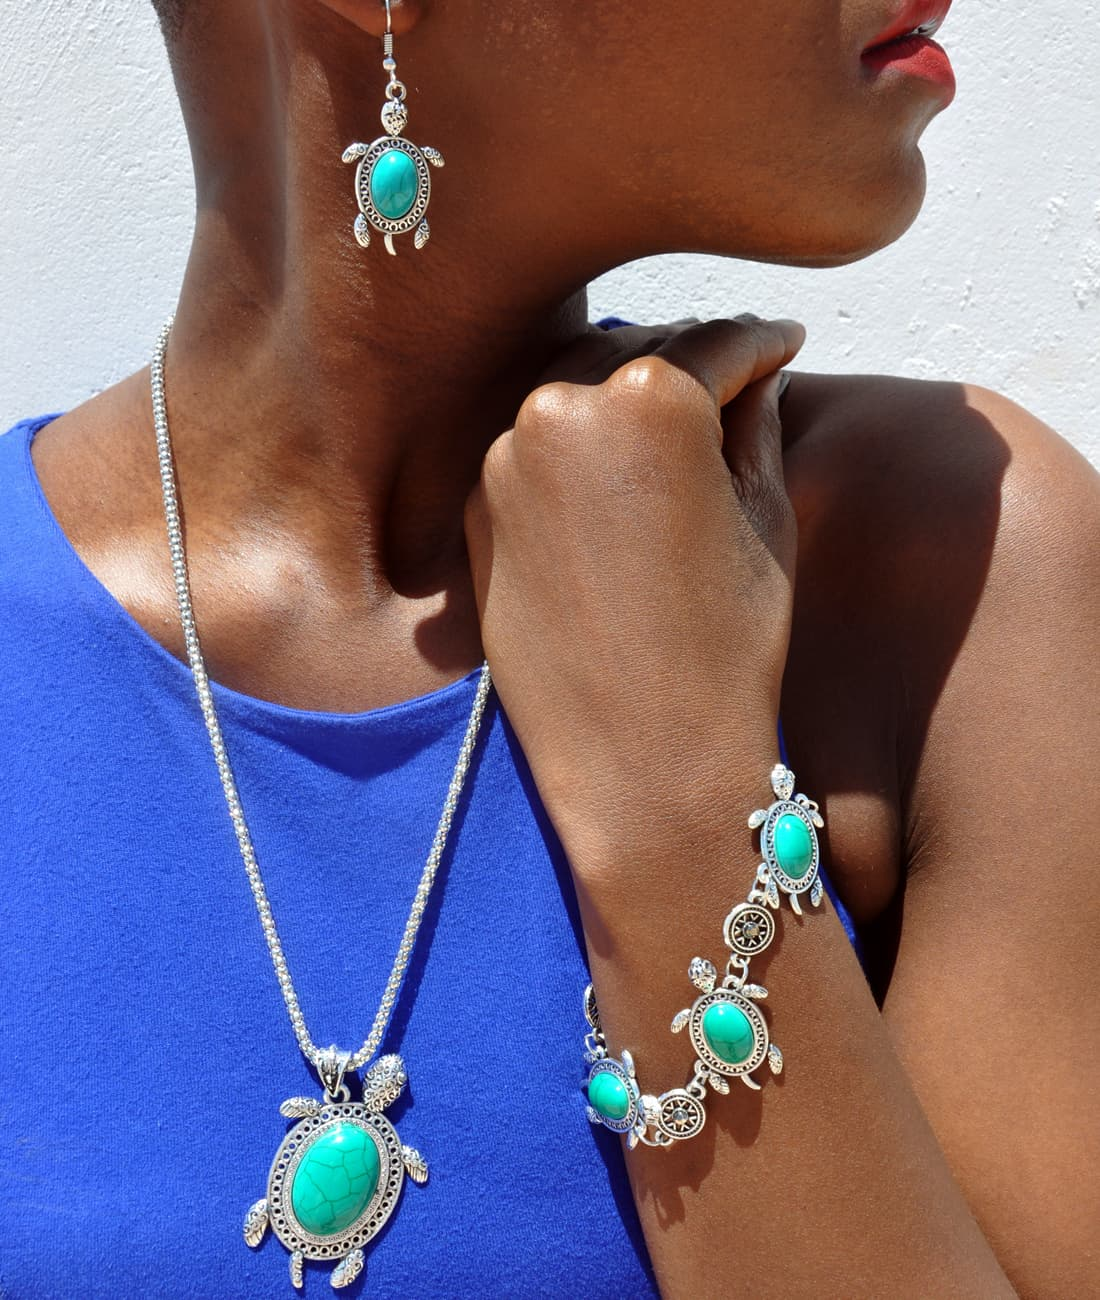 M0301 skyblue14 Jewelry Accessories Jewelry Sets maureens.com boutique